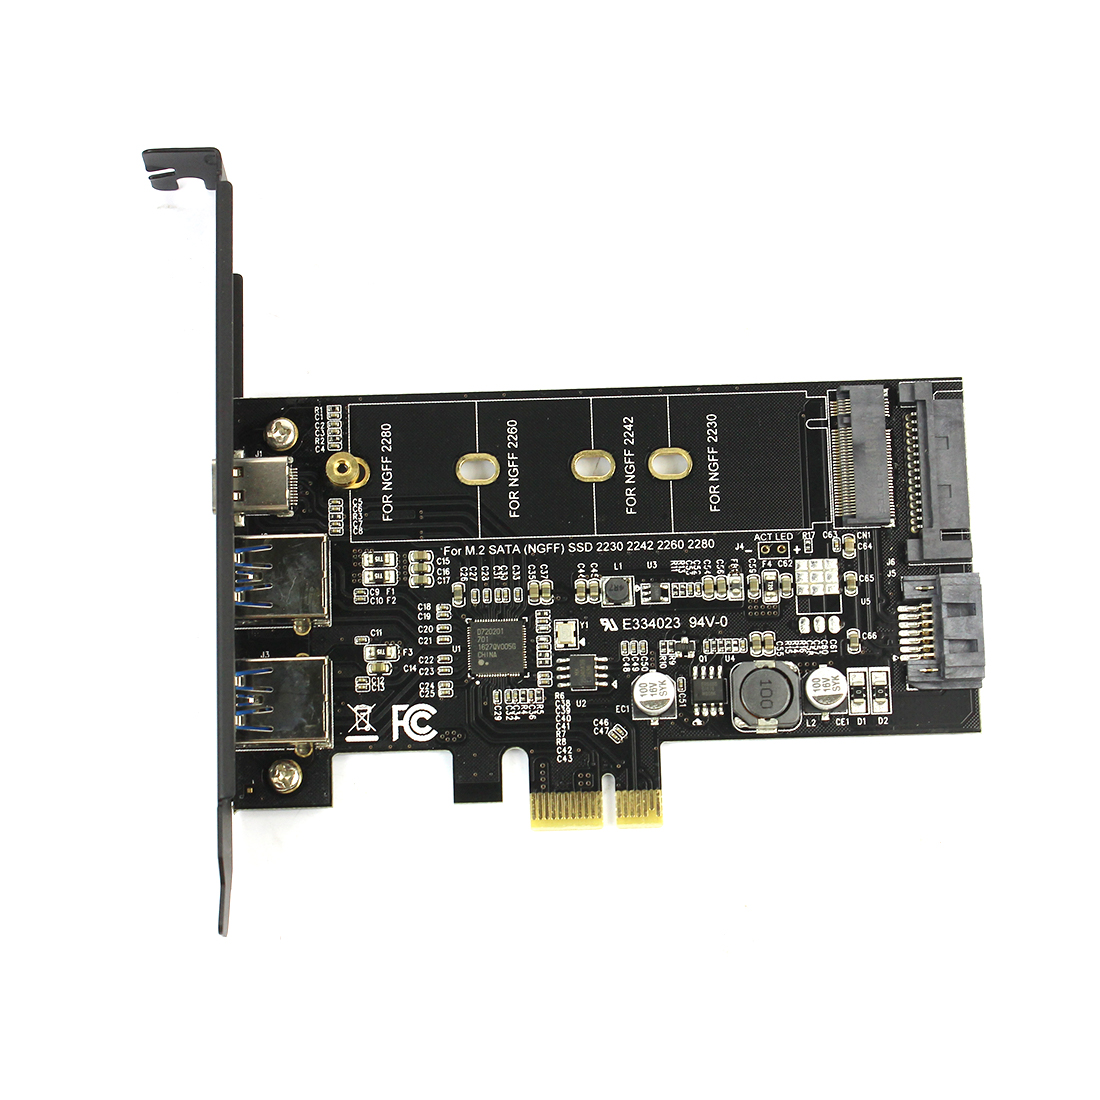 M2 SATA B Key To PCI-e 3.0 Controller Converter Riser Card 2x USB3.0 & Type-c M.2 PCIe Adapter For 2280 2260 2242 2230 NGFF